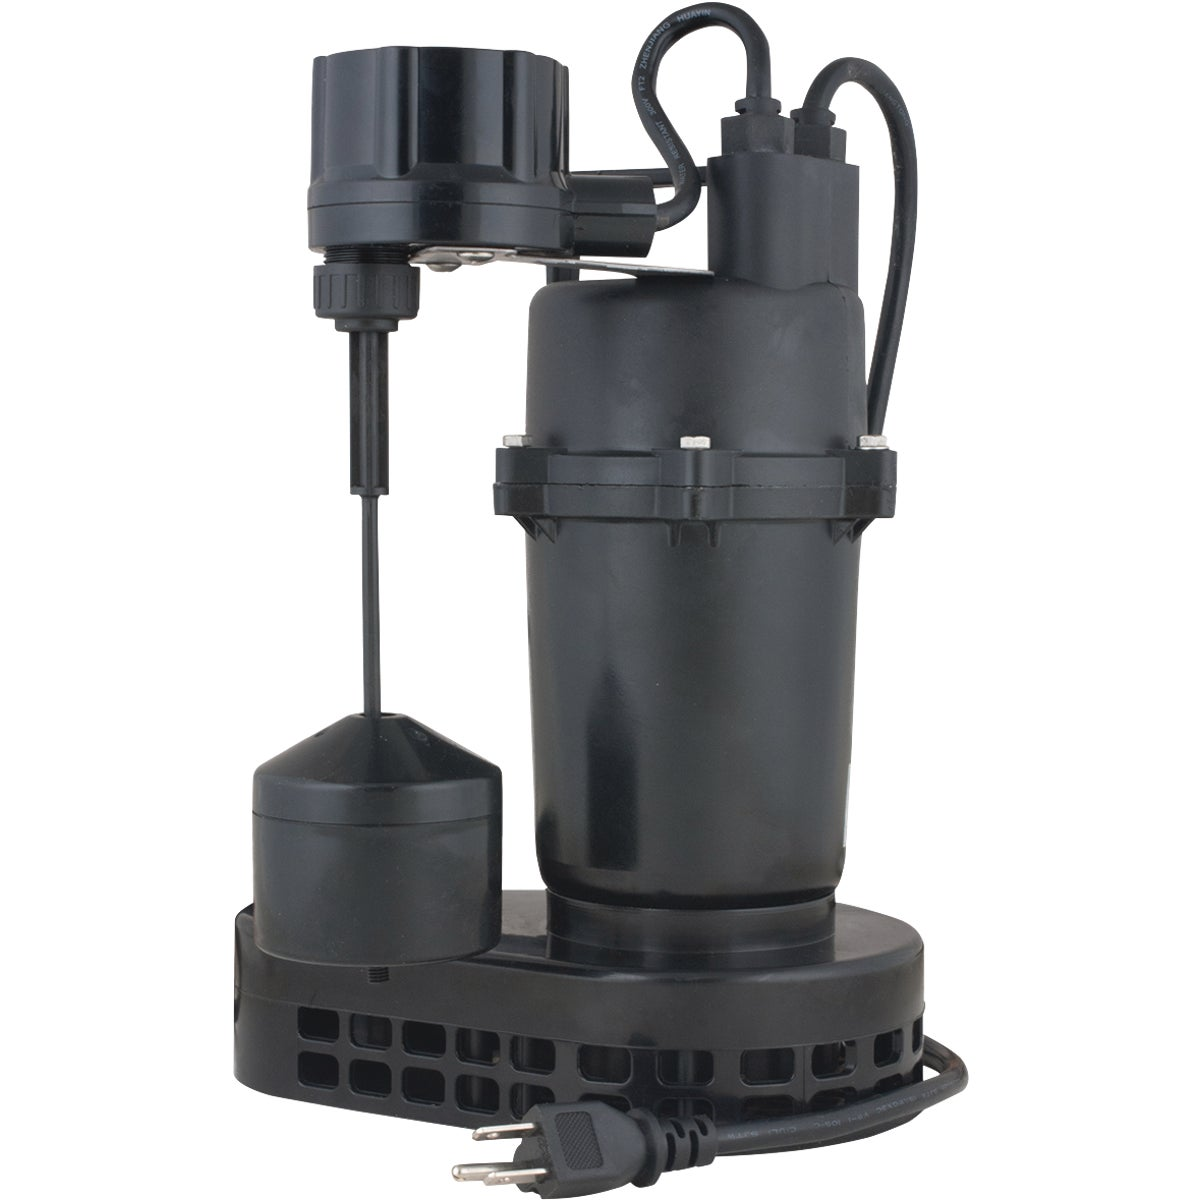 3/10PLASTIC SUMP PUMP - 3SPH-L by Star Water Systems